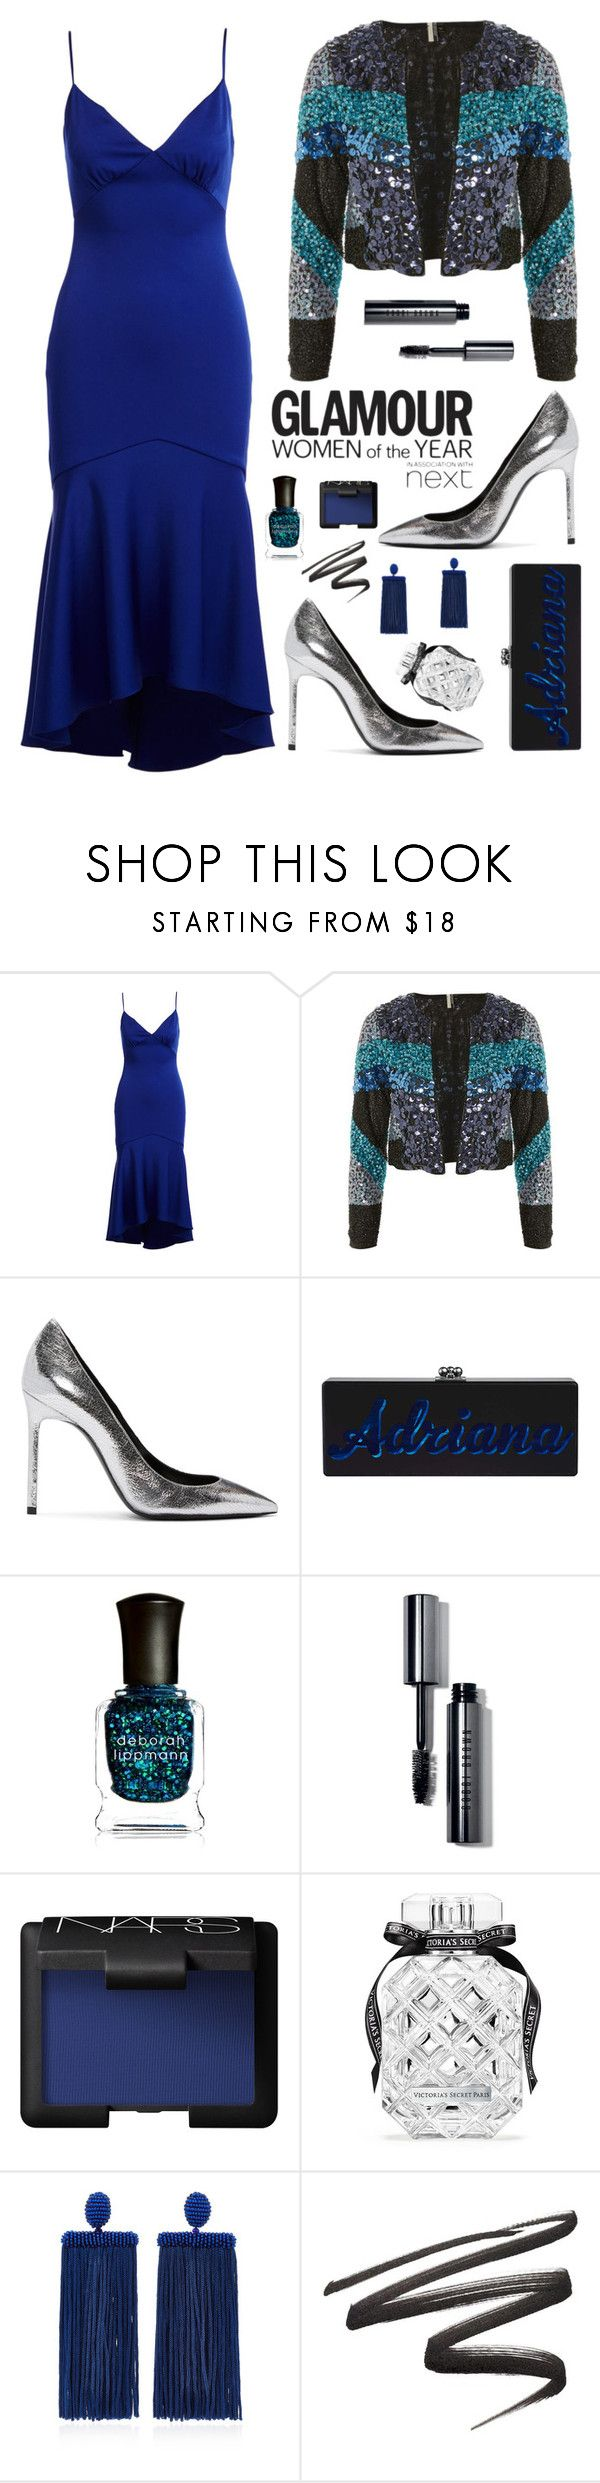 """Glam for New Year in blue"" by kika-lv ❤ liked on Polyvore featuring Theia, Topshop, Yves Saint Laurent, Goody, Deborah Lippmann, Bobbi Brown Cosmetics, NARS Cosmetics, Victoria's Secret and Oscar de la Renta"